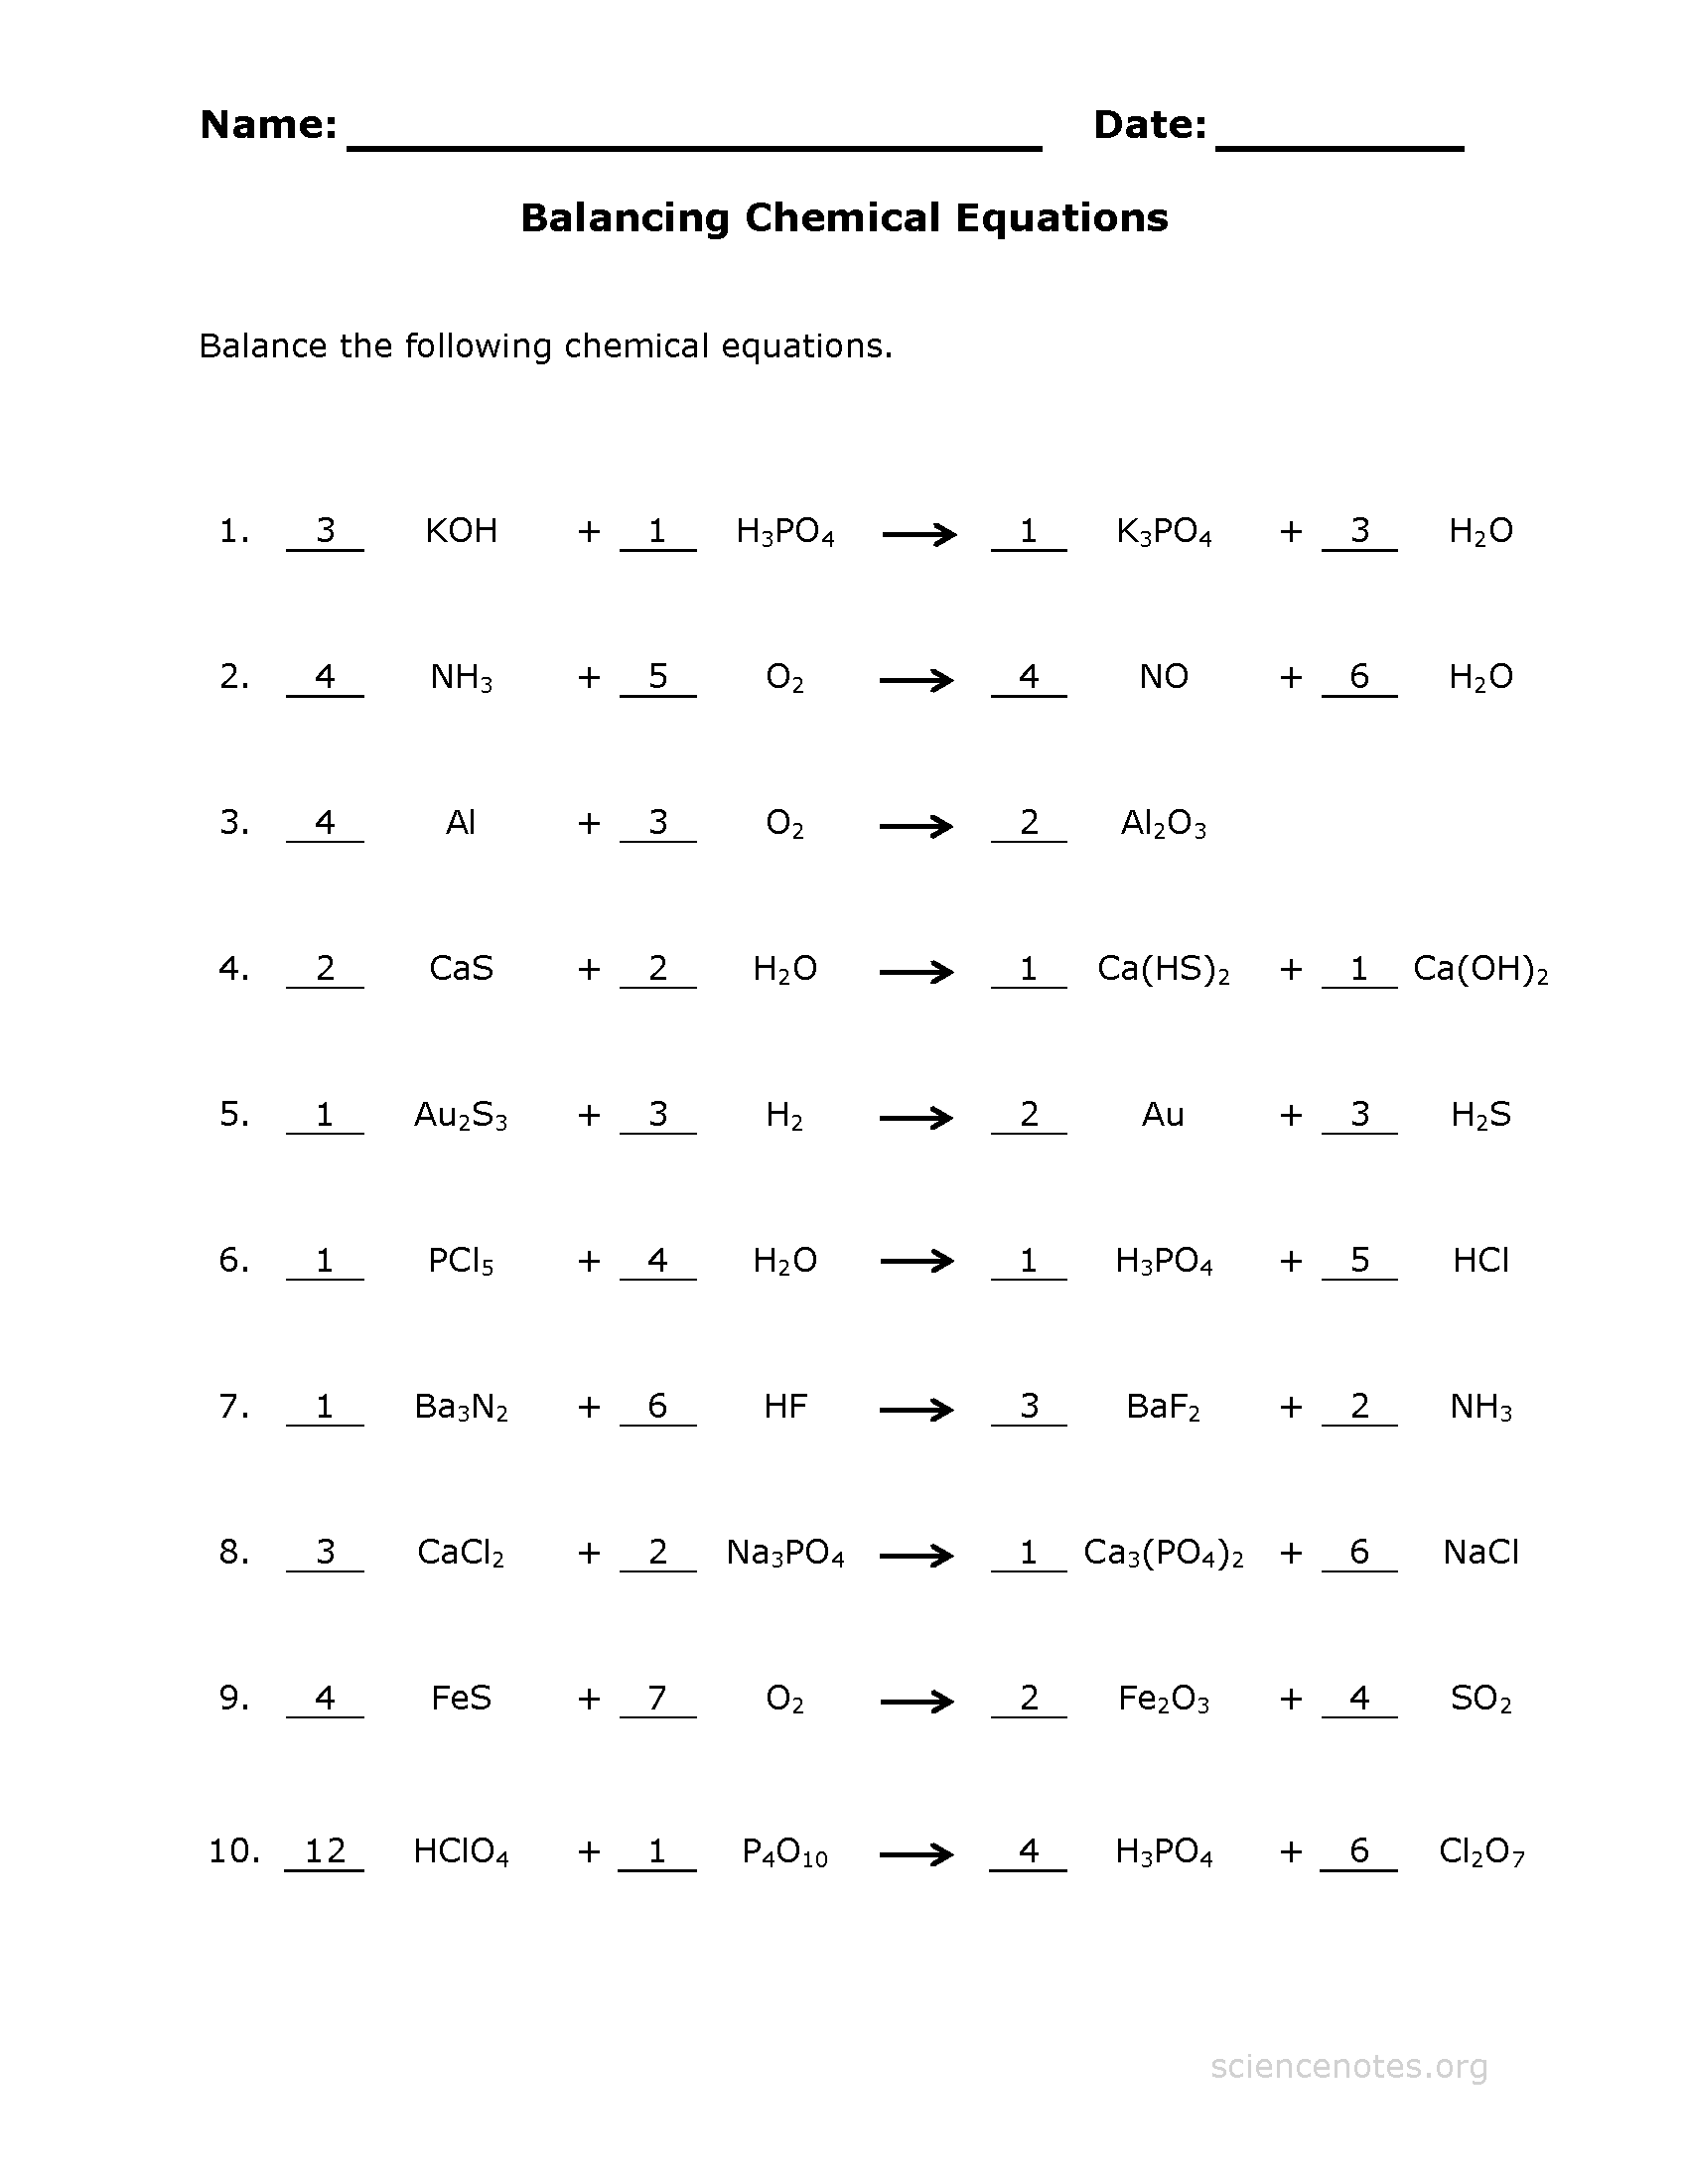 Worksheets Chemical Reactions Worksheet balancing chemical reactions worksheet answers equations 1 answer key samsungblueearth balanced equation